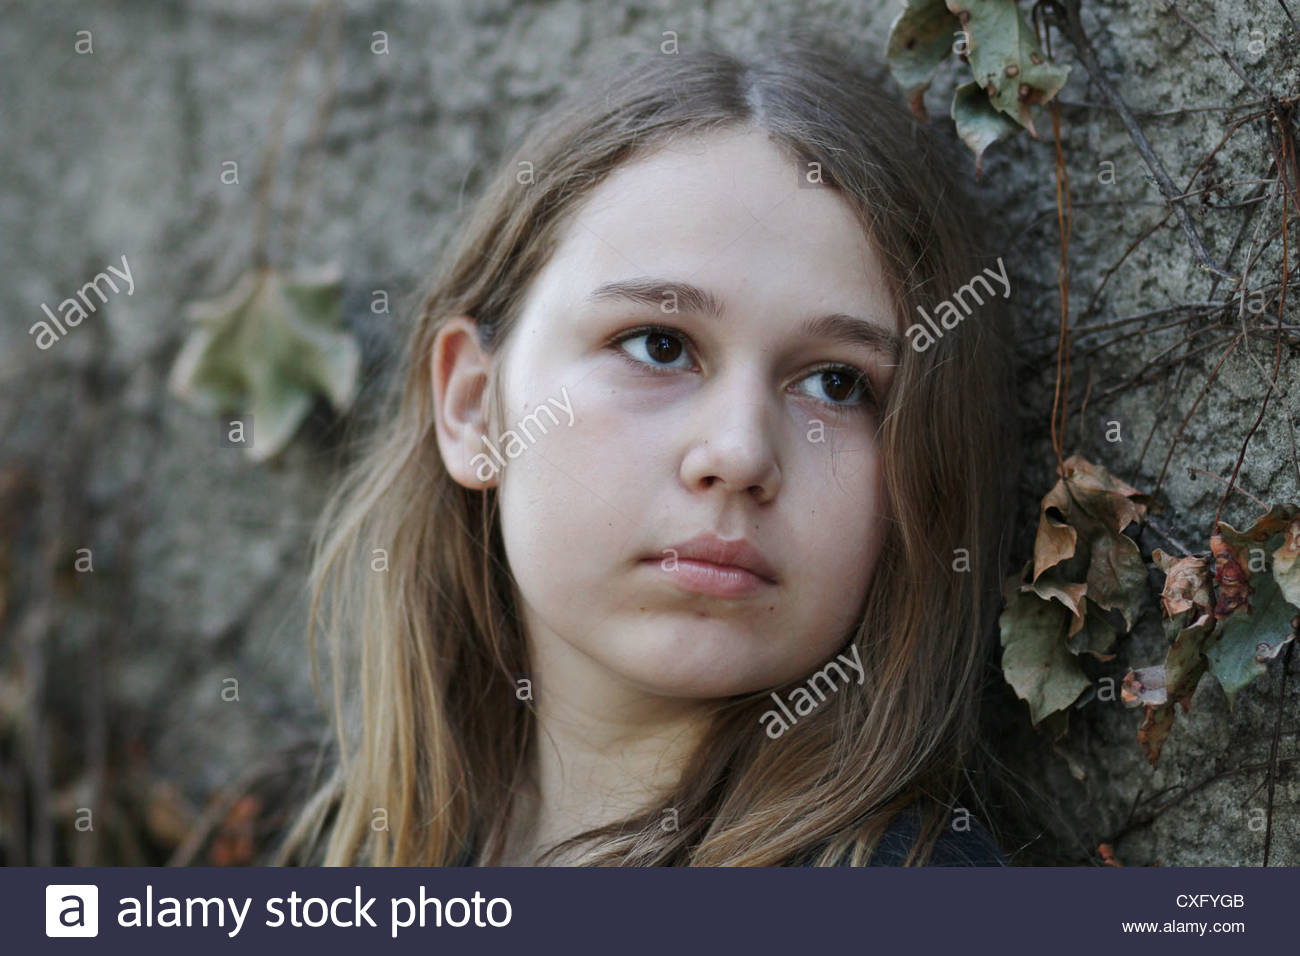 A close up of the face of a 13 year old girl leaning against a wall. - Stock Image